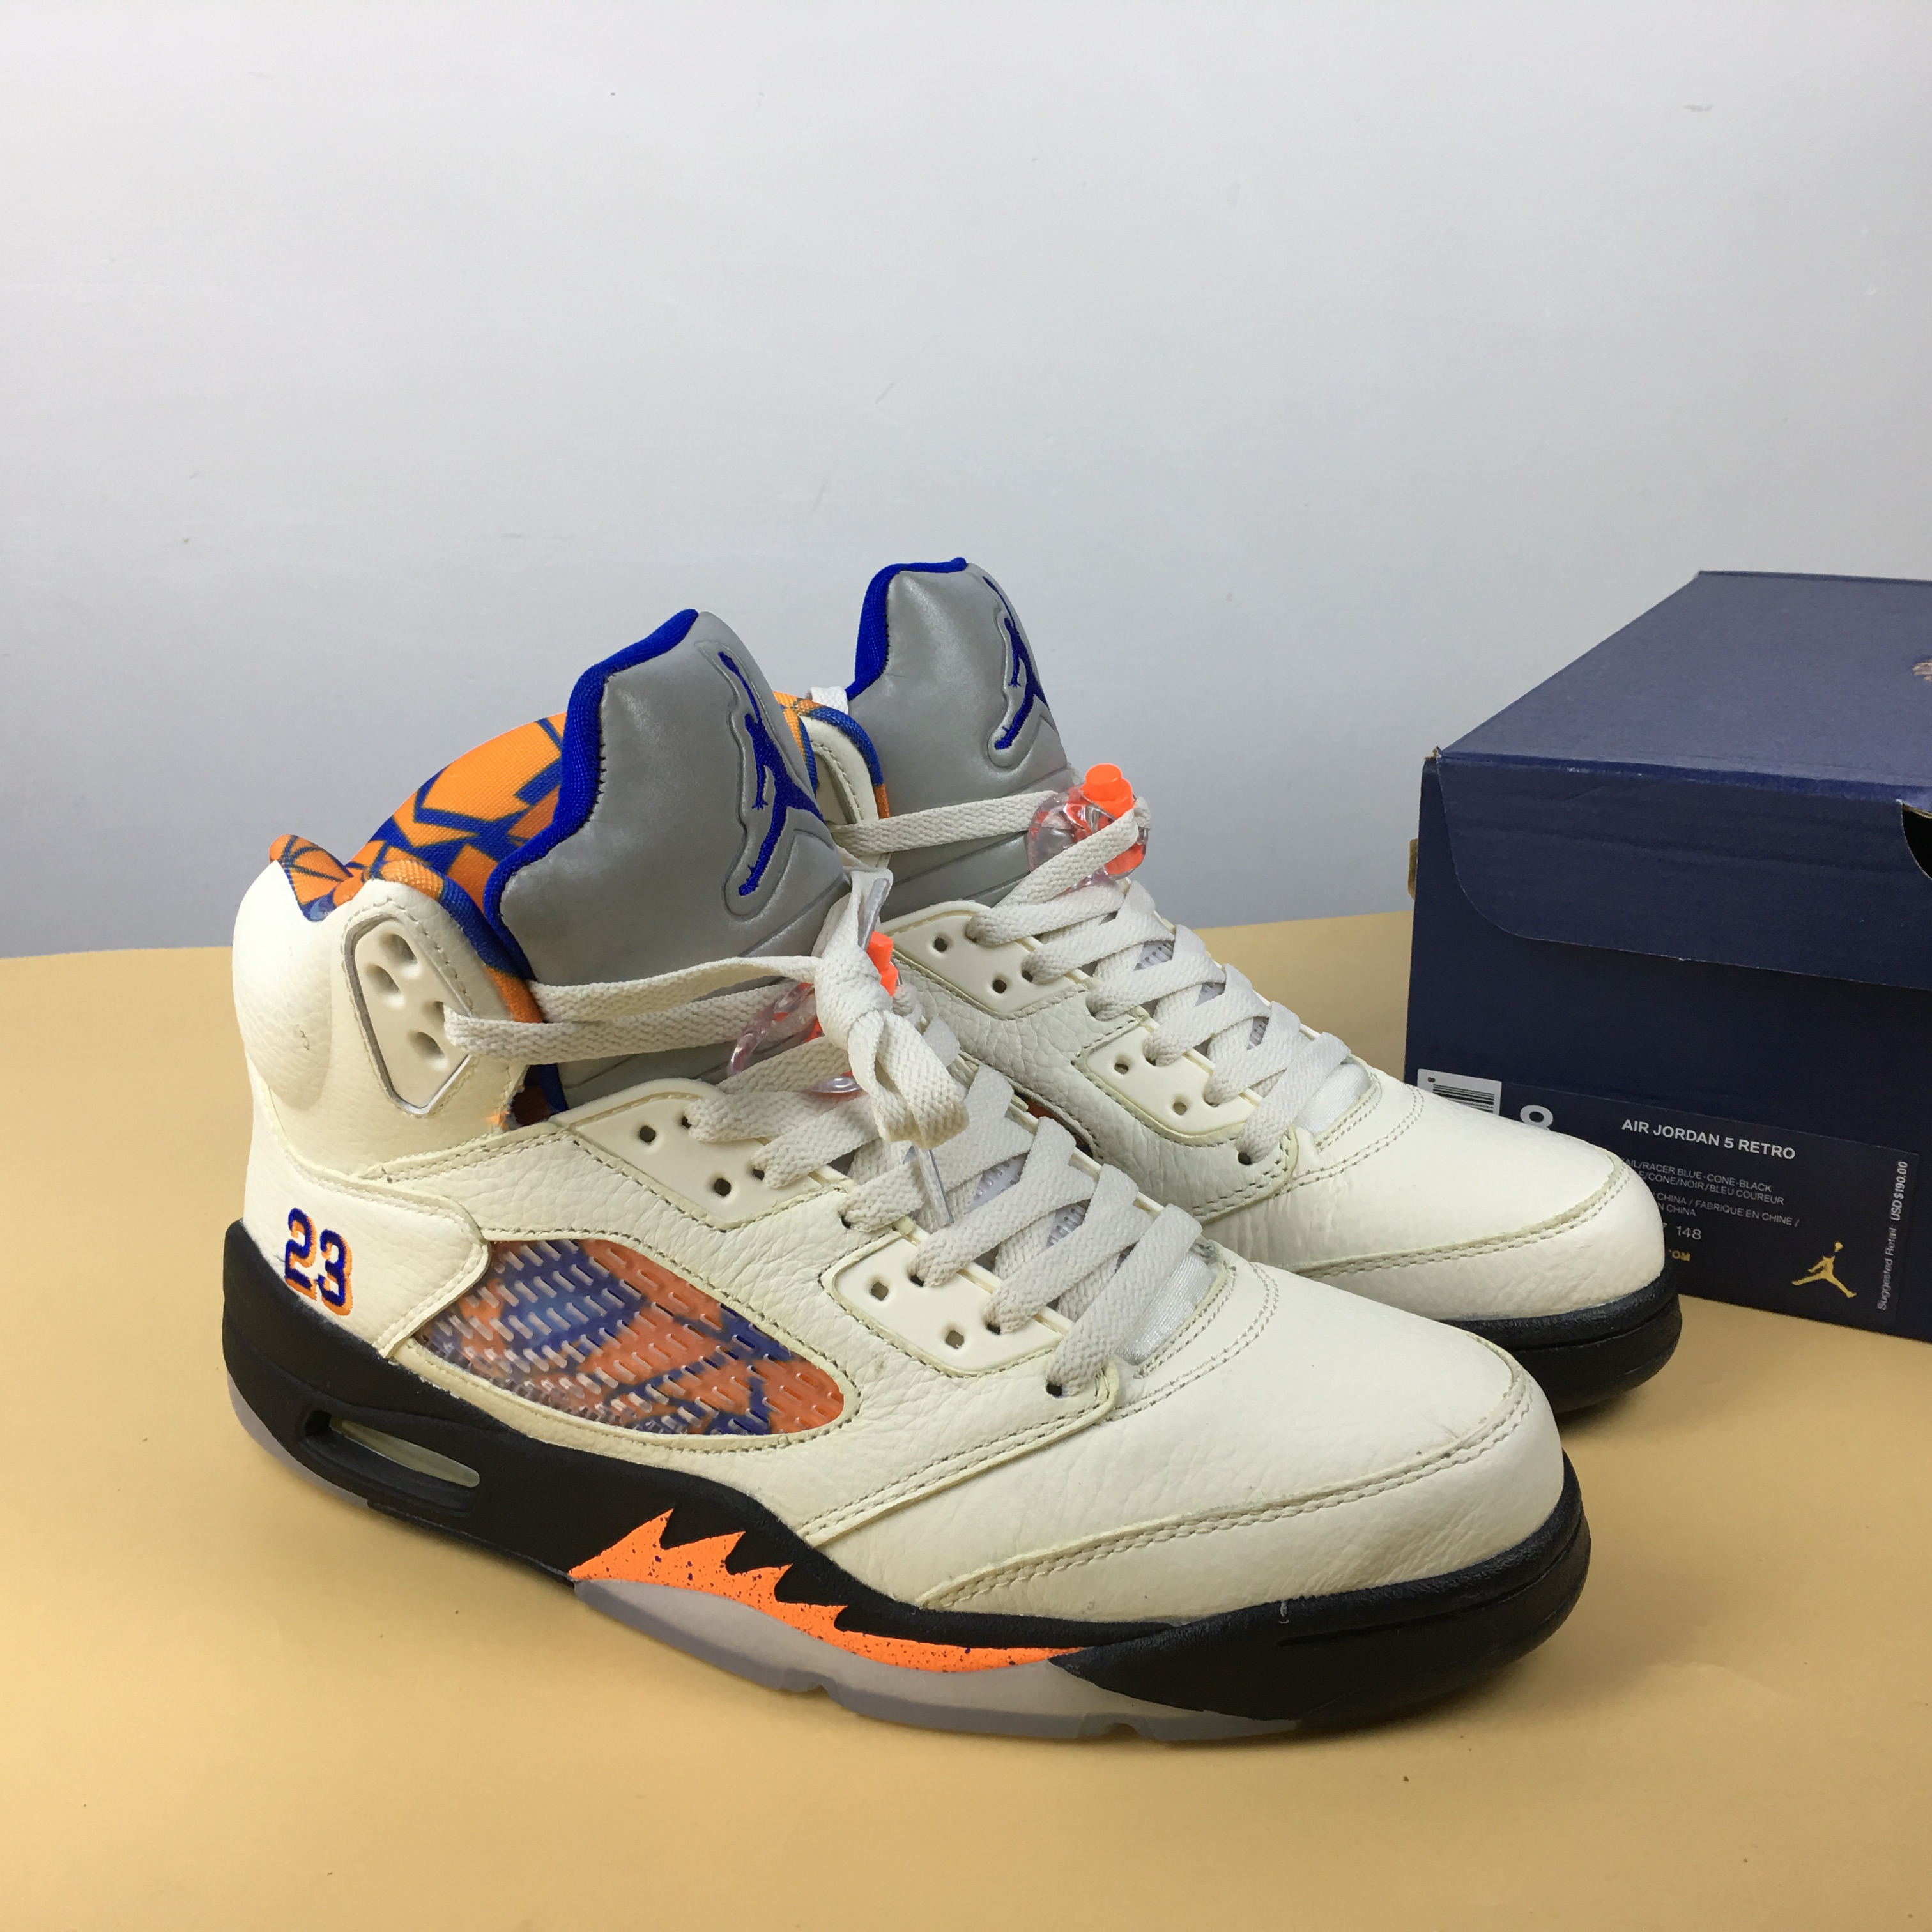 Air Jordan 5 International Flight White Orange Blue Shoes